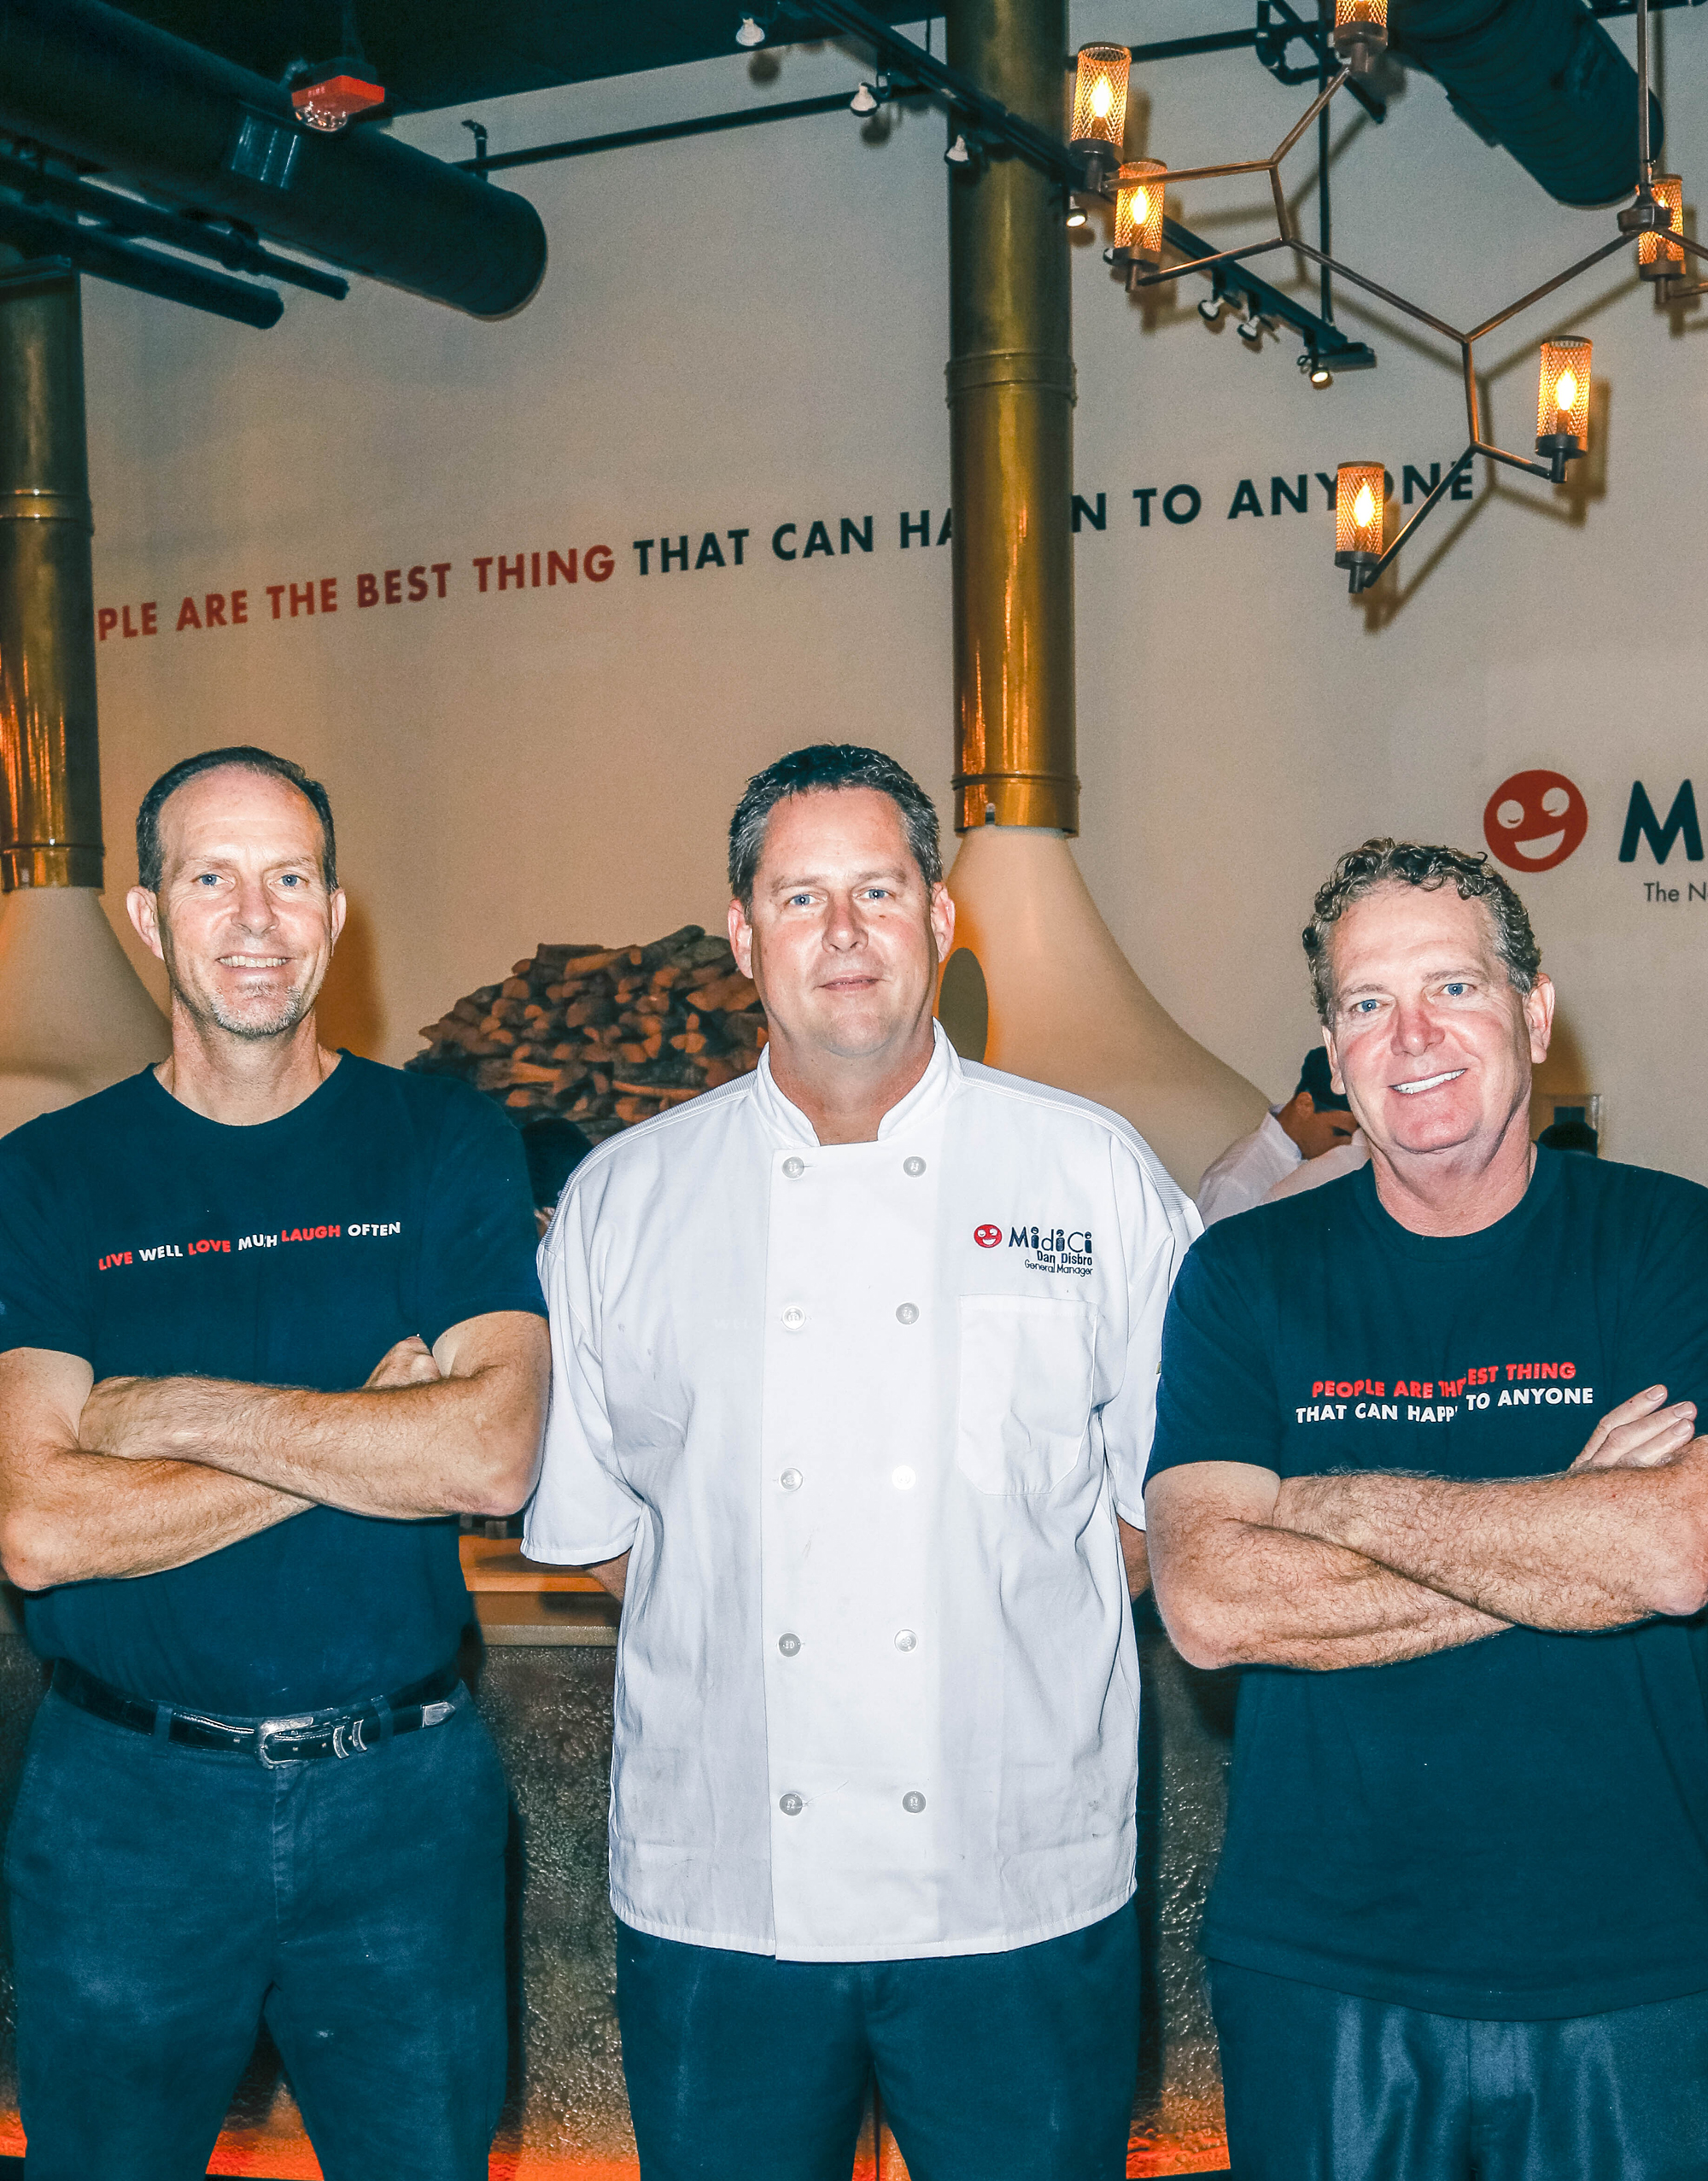 Left to right: Co-franchisee John Eckermann, General Manager Dan Disbro and Co-franchisee Harold Bradshaw